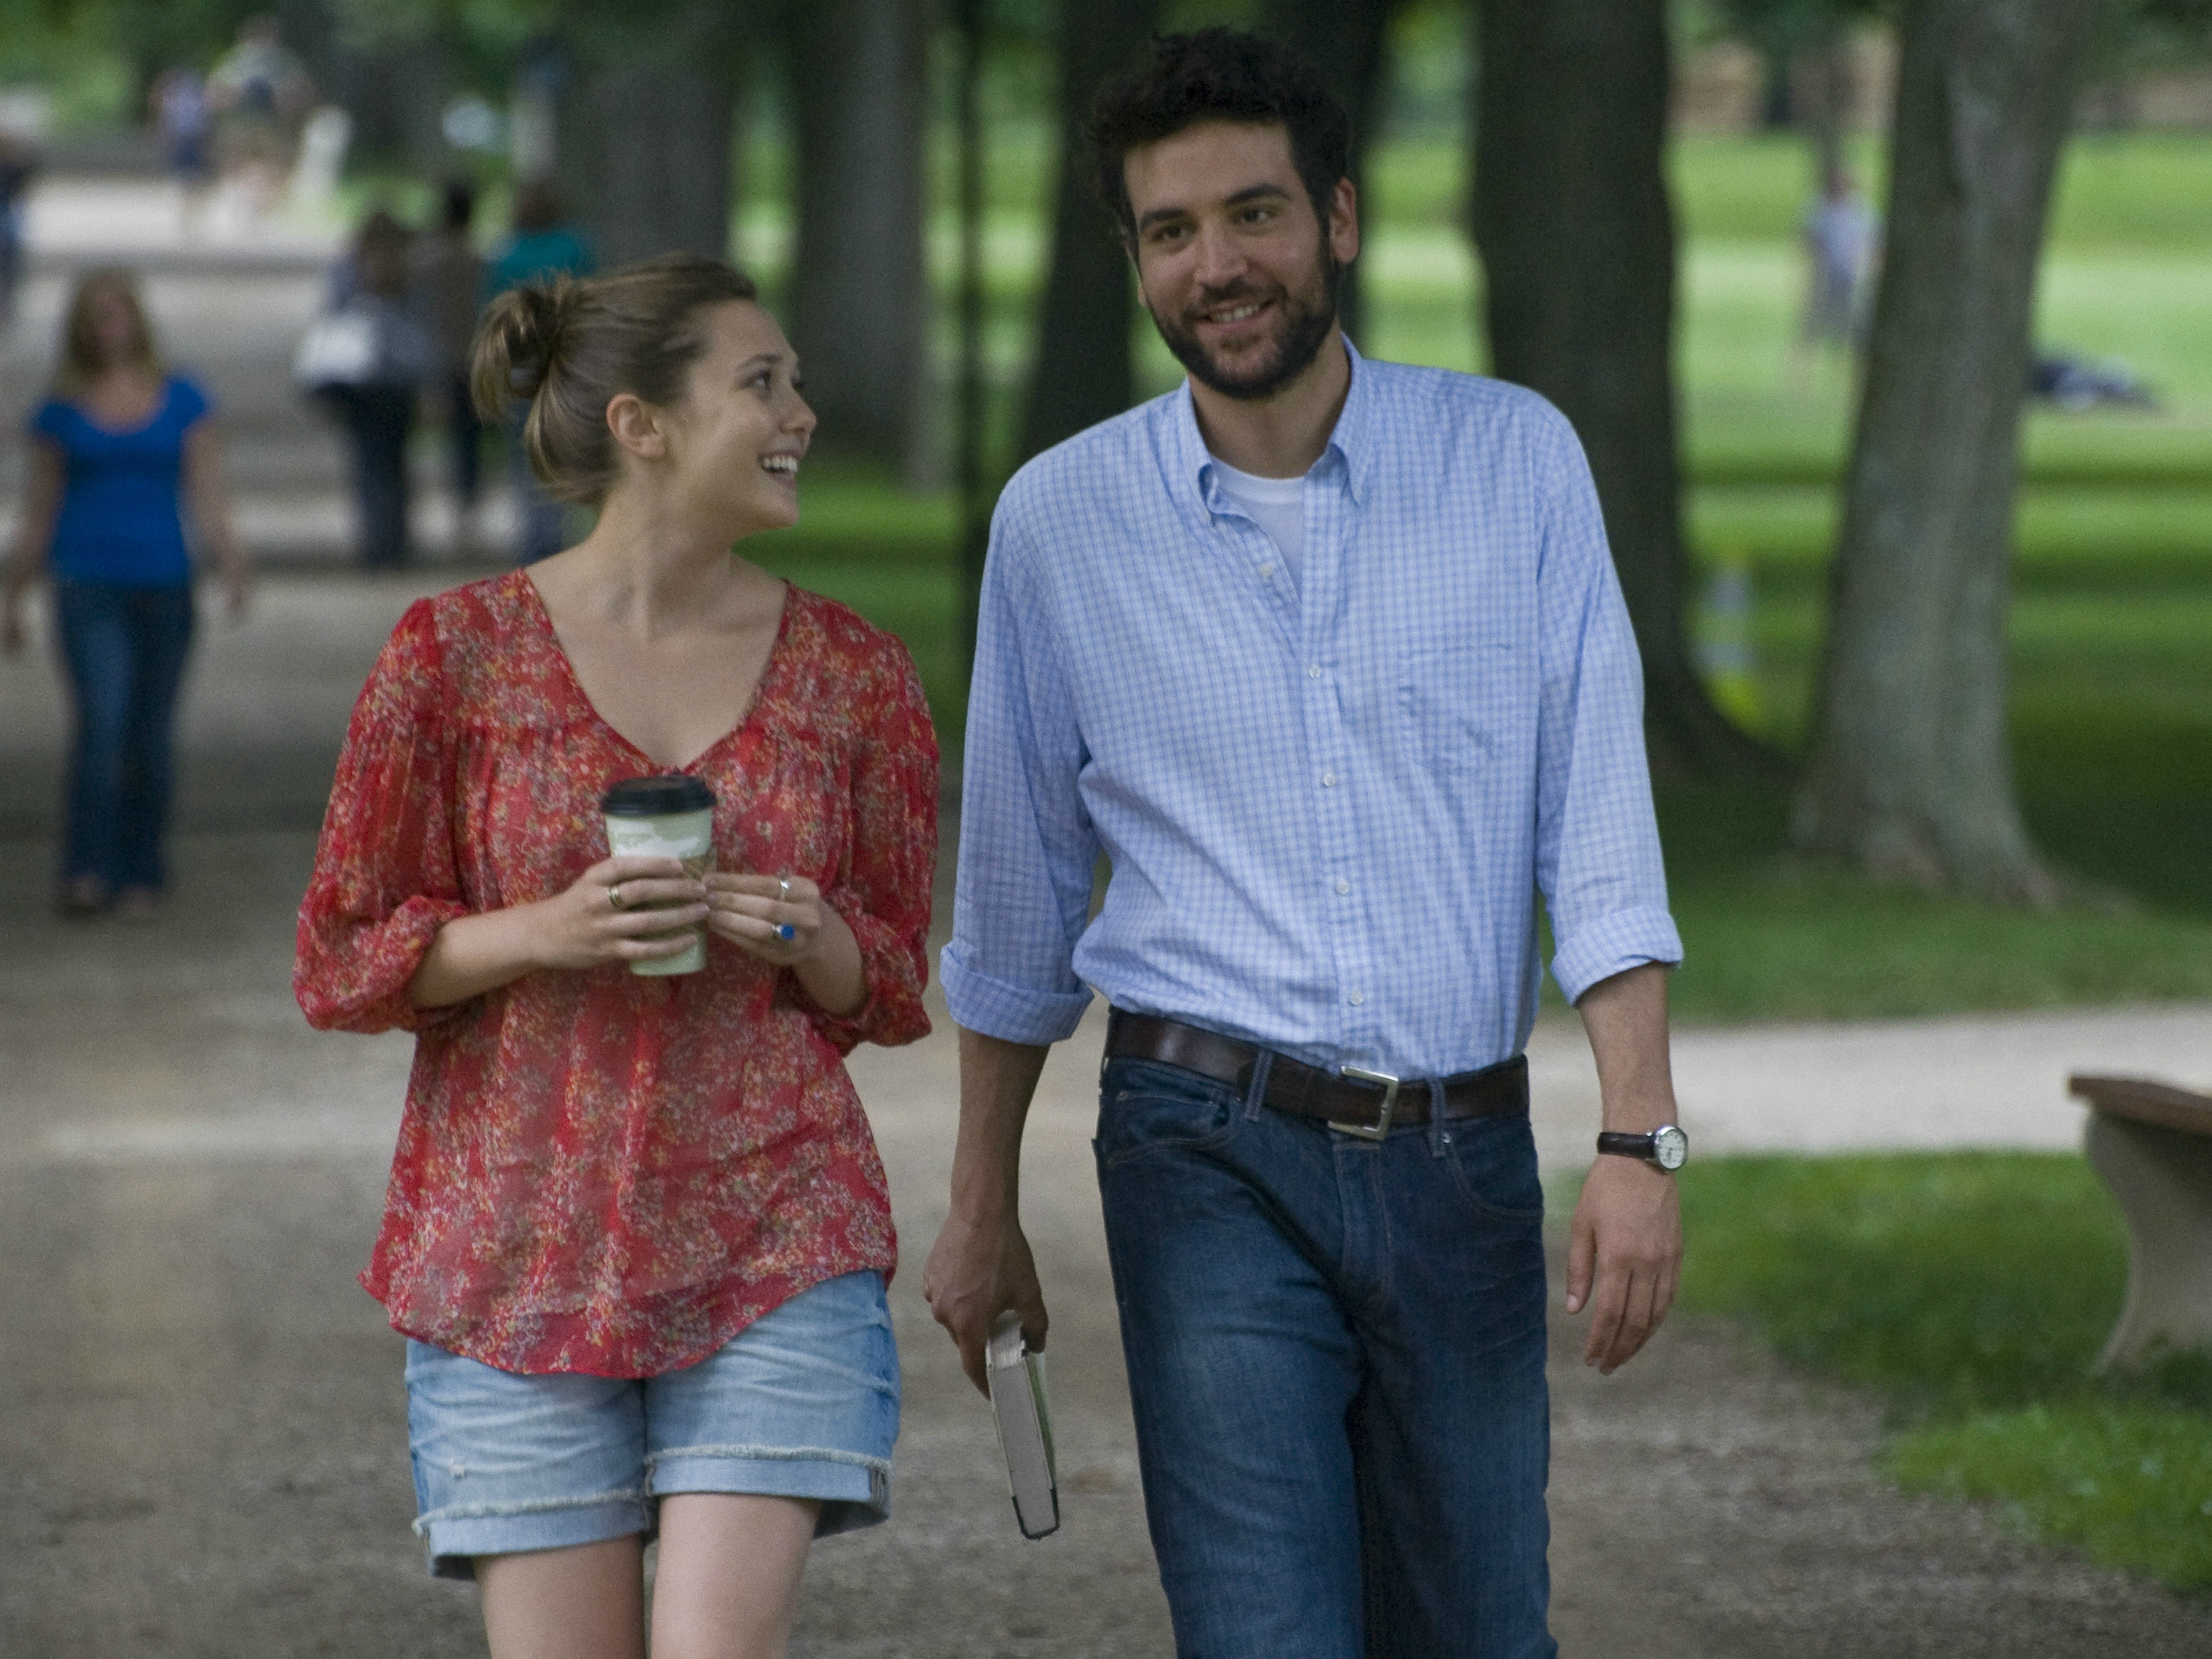 'Liberal Arts' Review: Olsen Breathes Life Into Unexpected College Romance